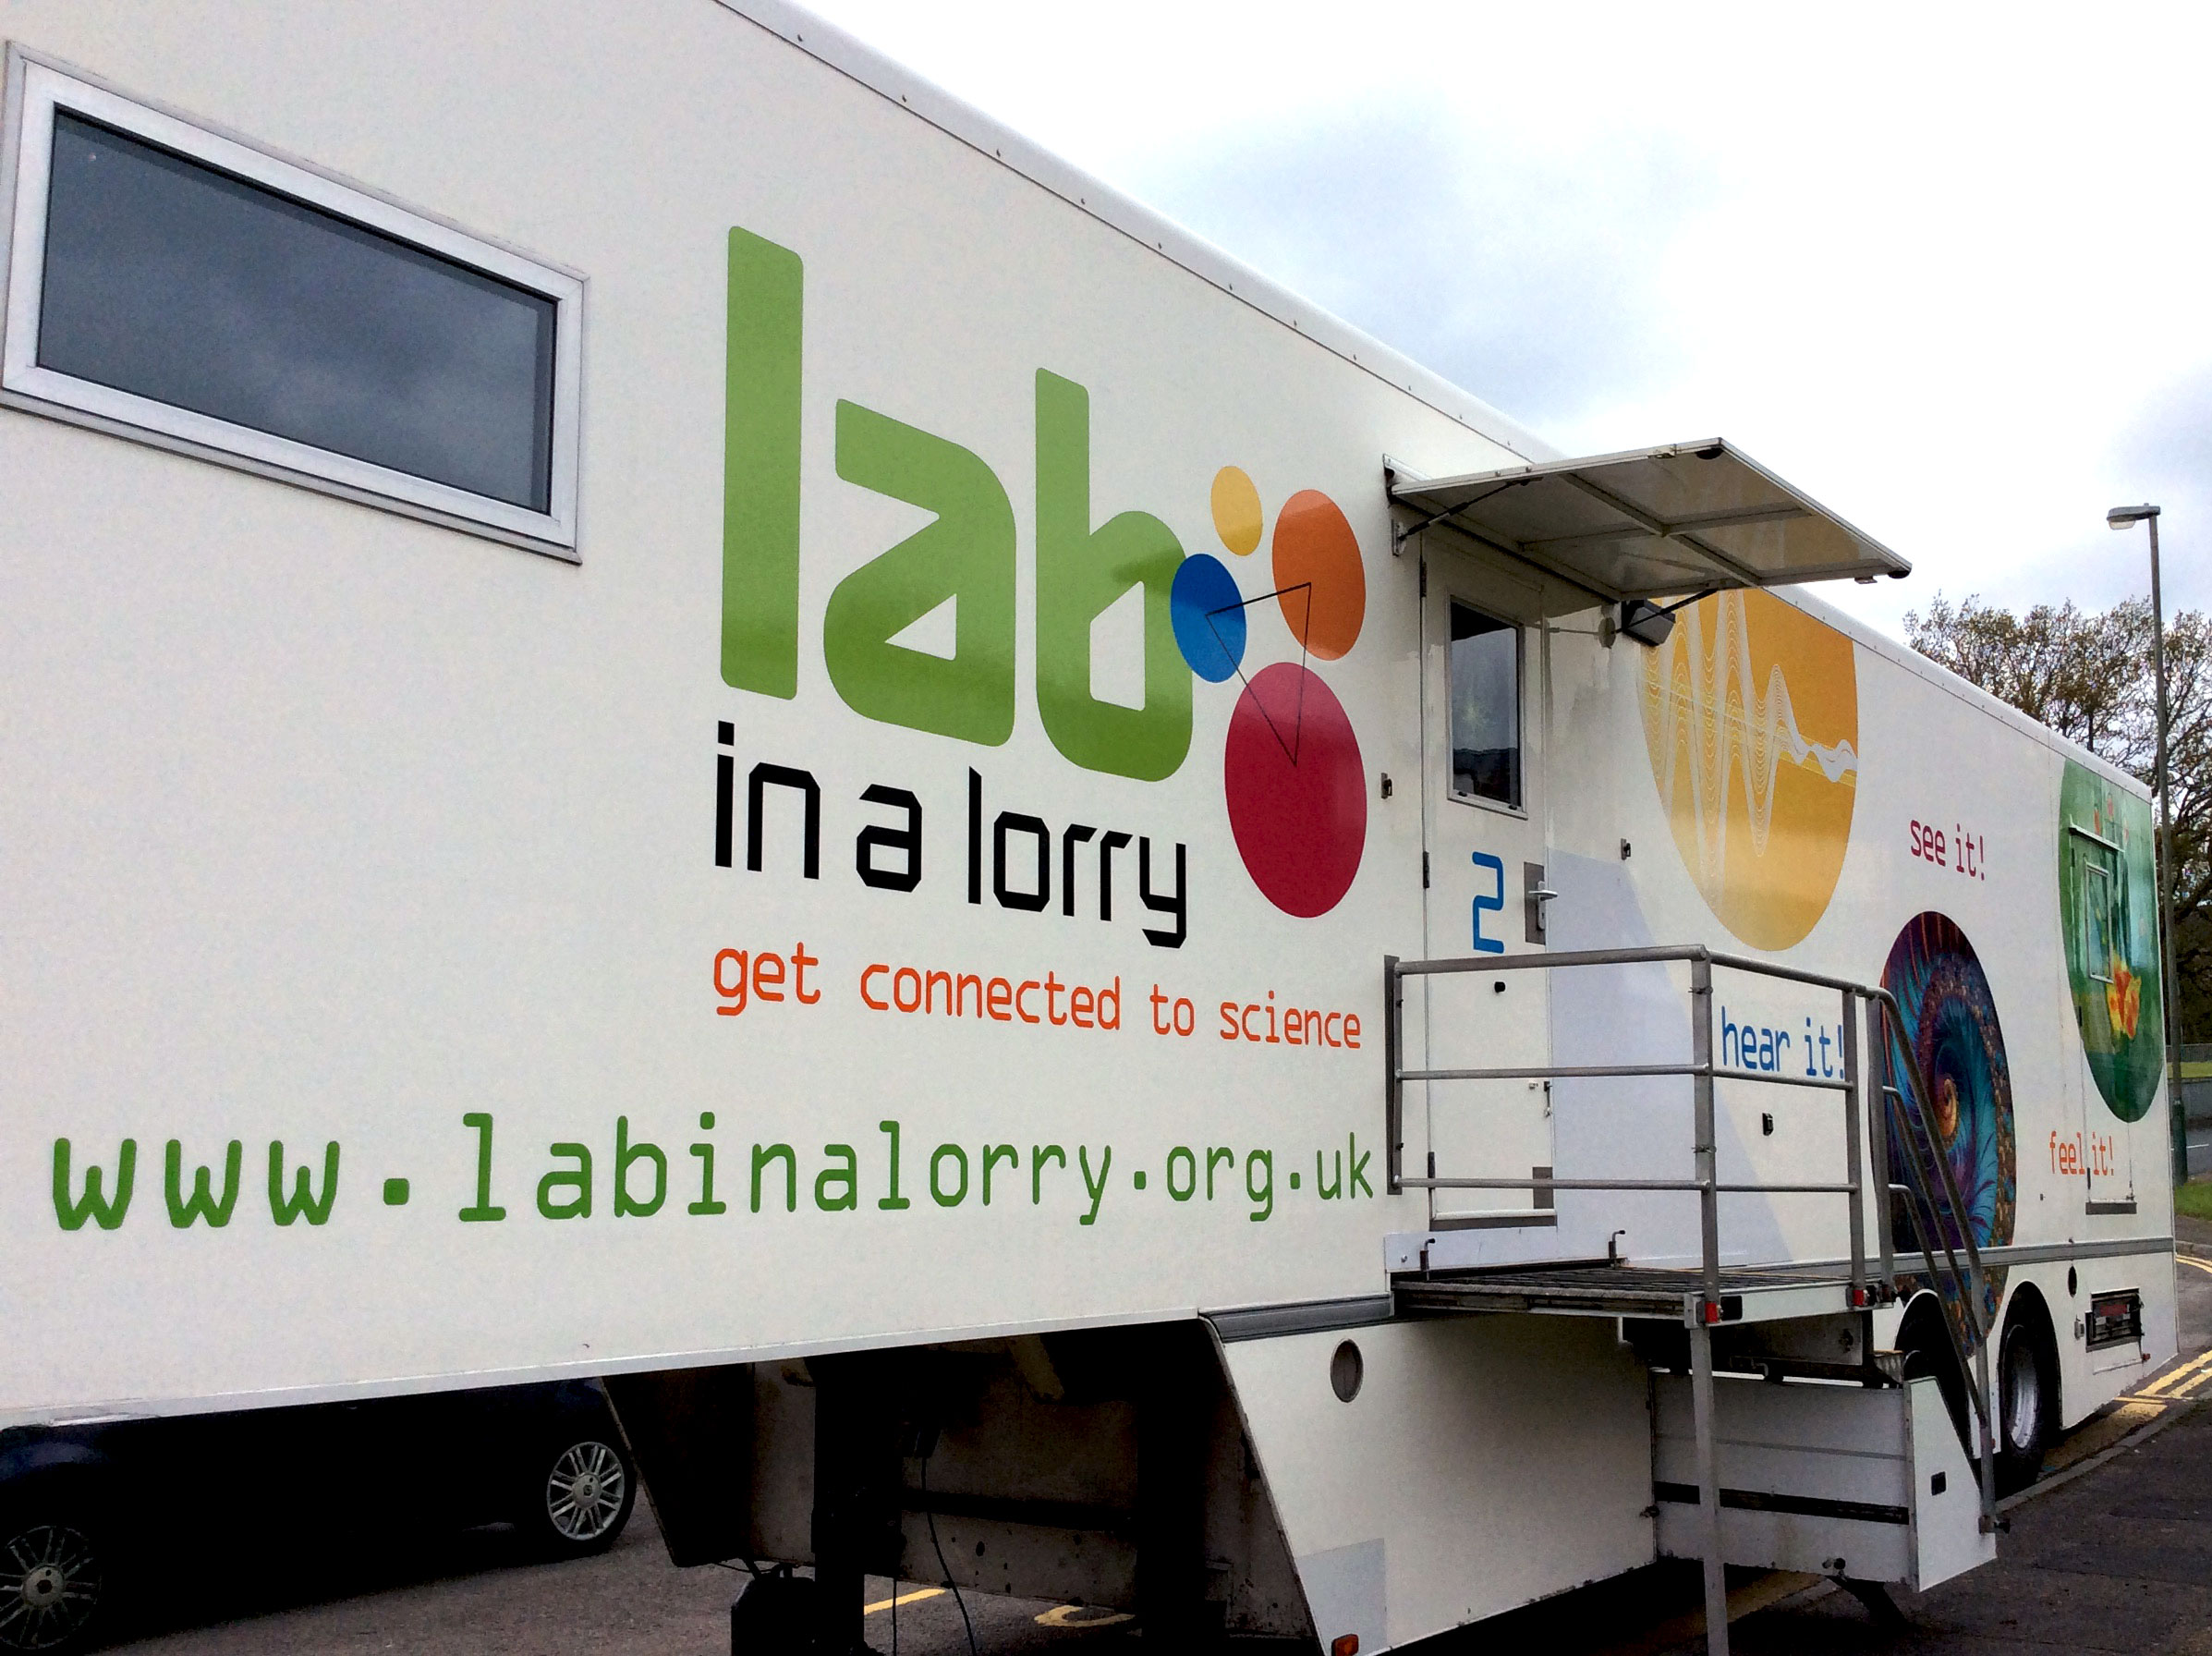 Lab-in-a-Lorry-1